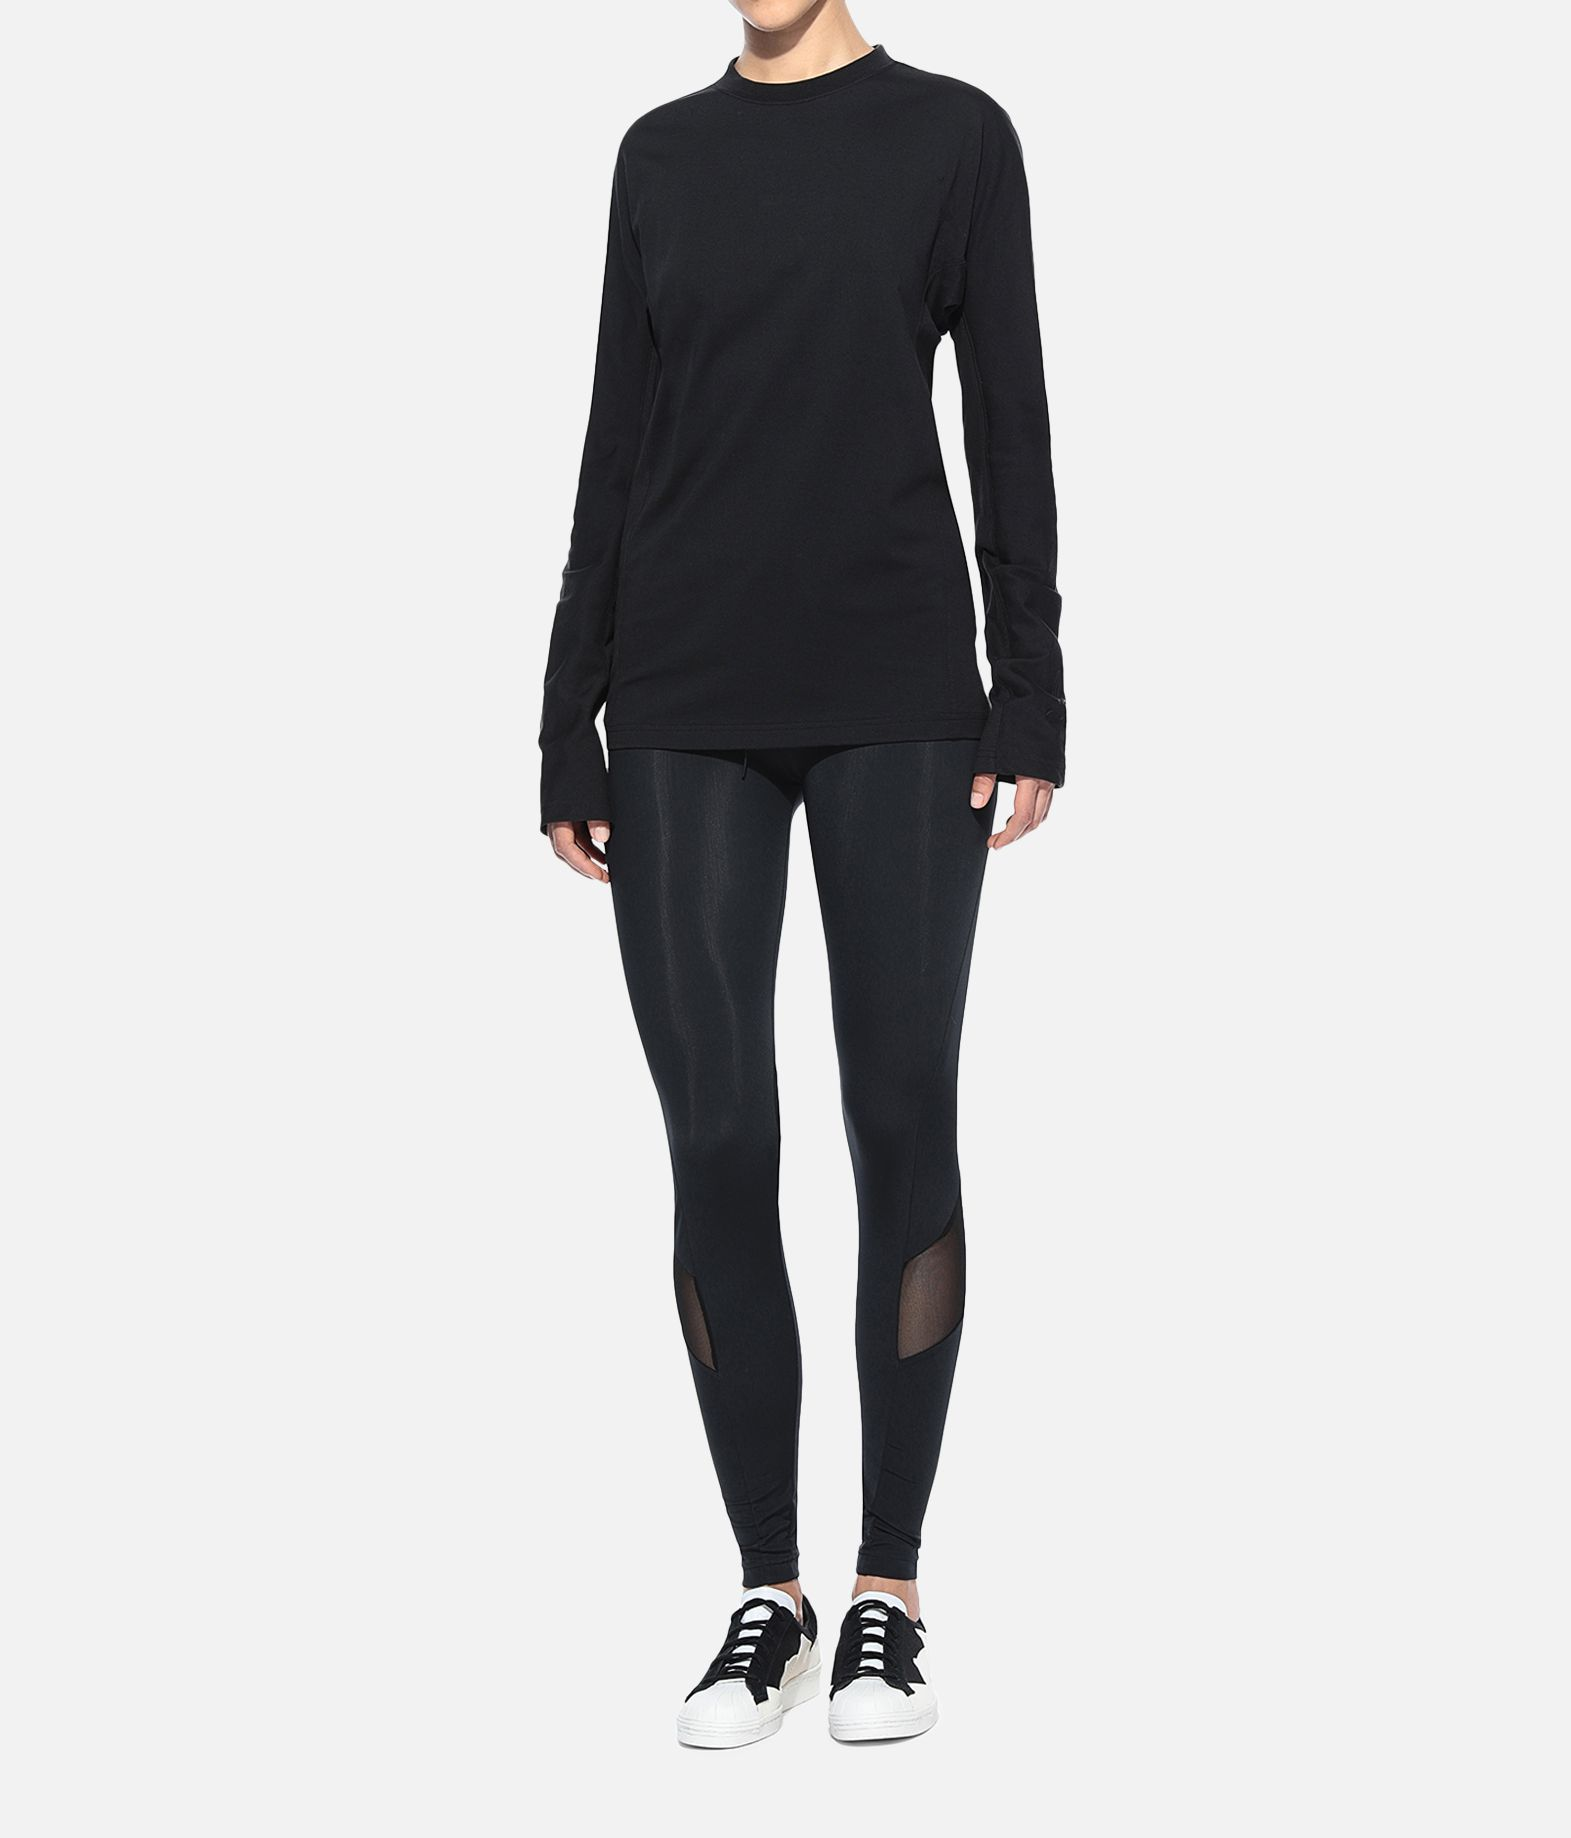 Y-3 Y-3 New Classic Tights Leggings Woman a